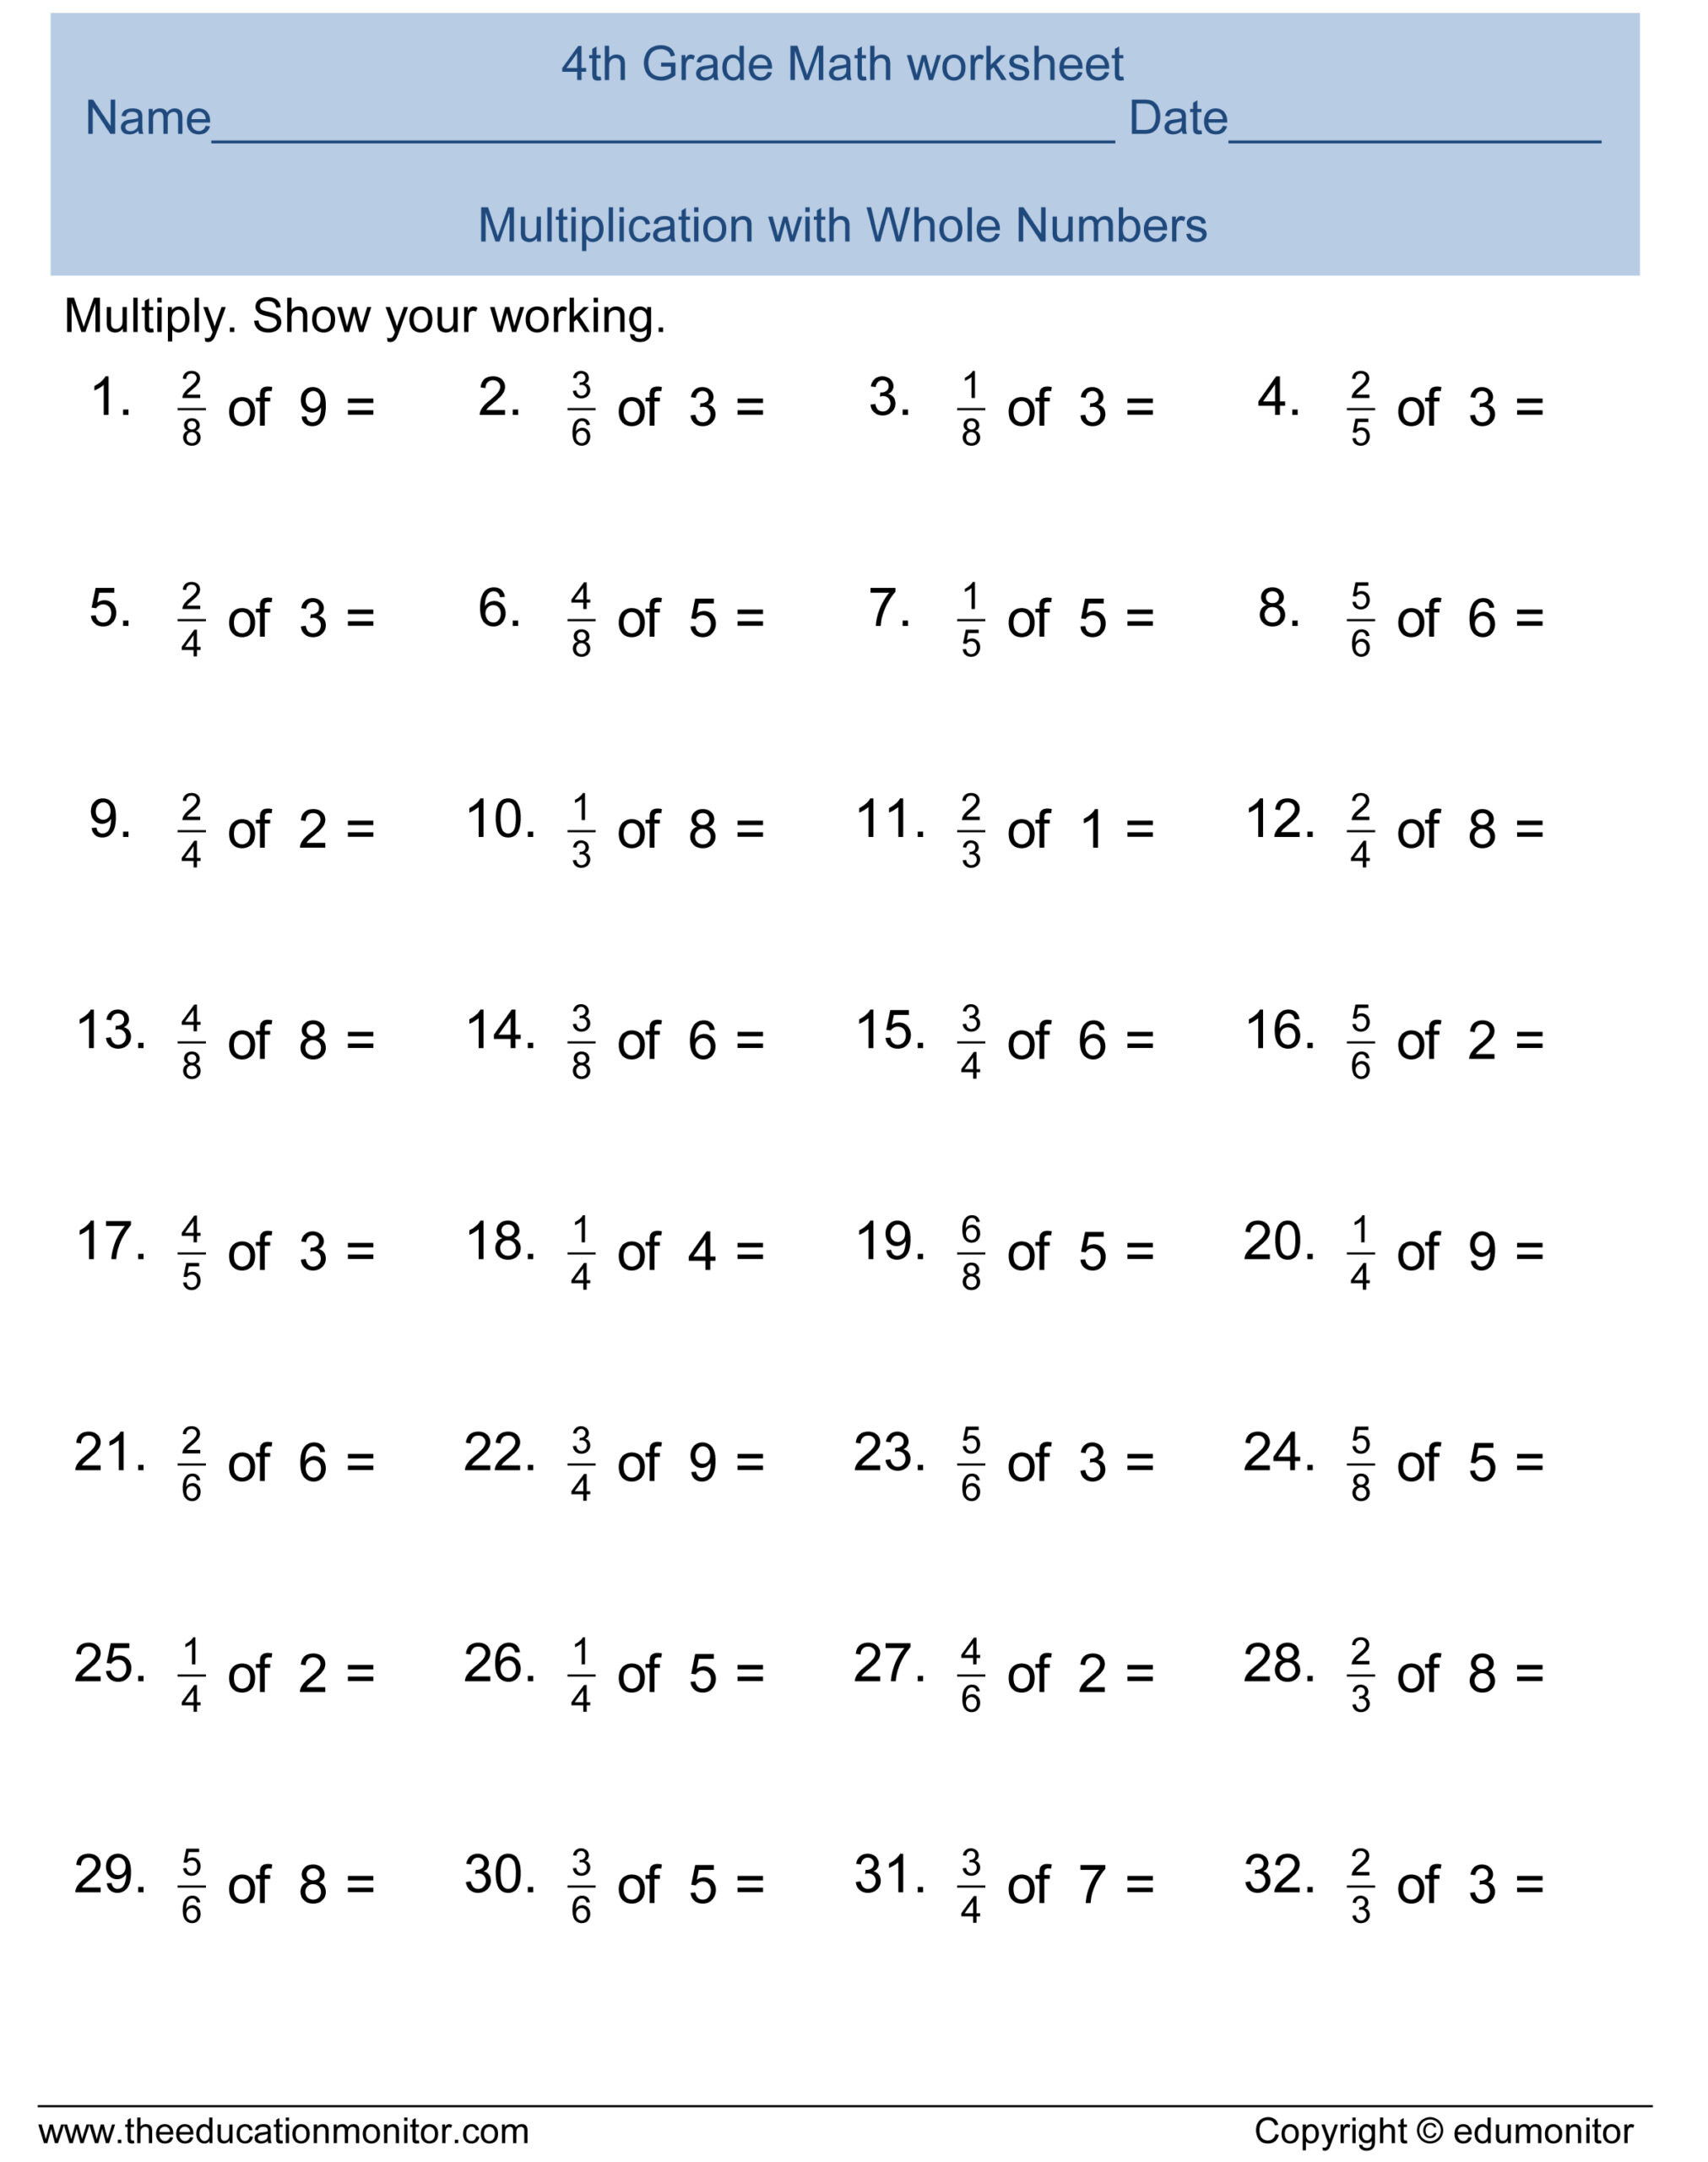 4th gradections worksheets image ideas free math and printables edumonitor multiplying worksheet cross